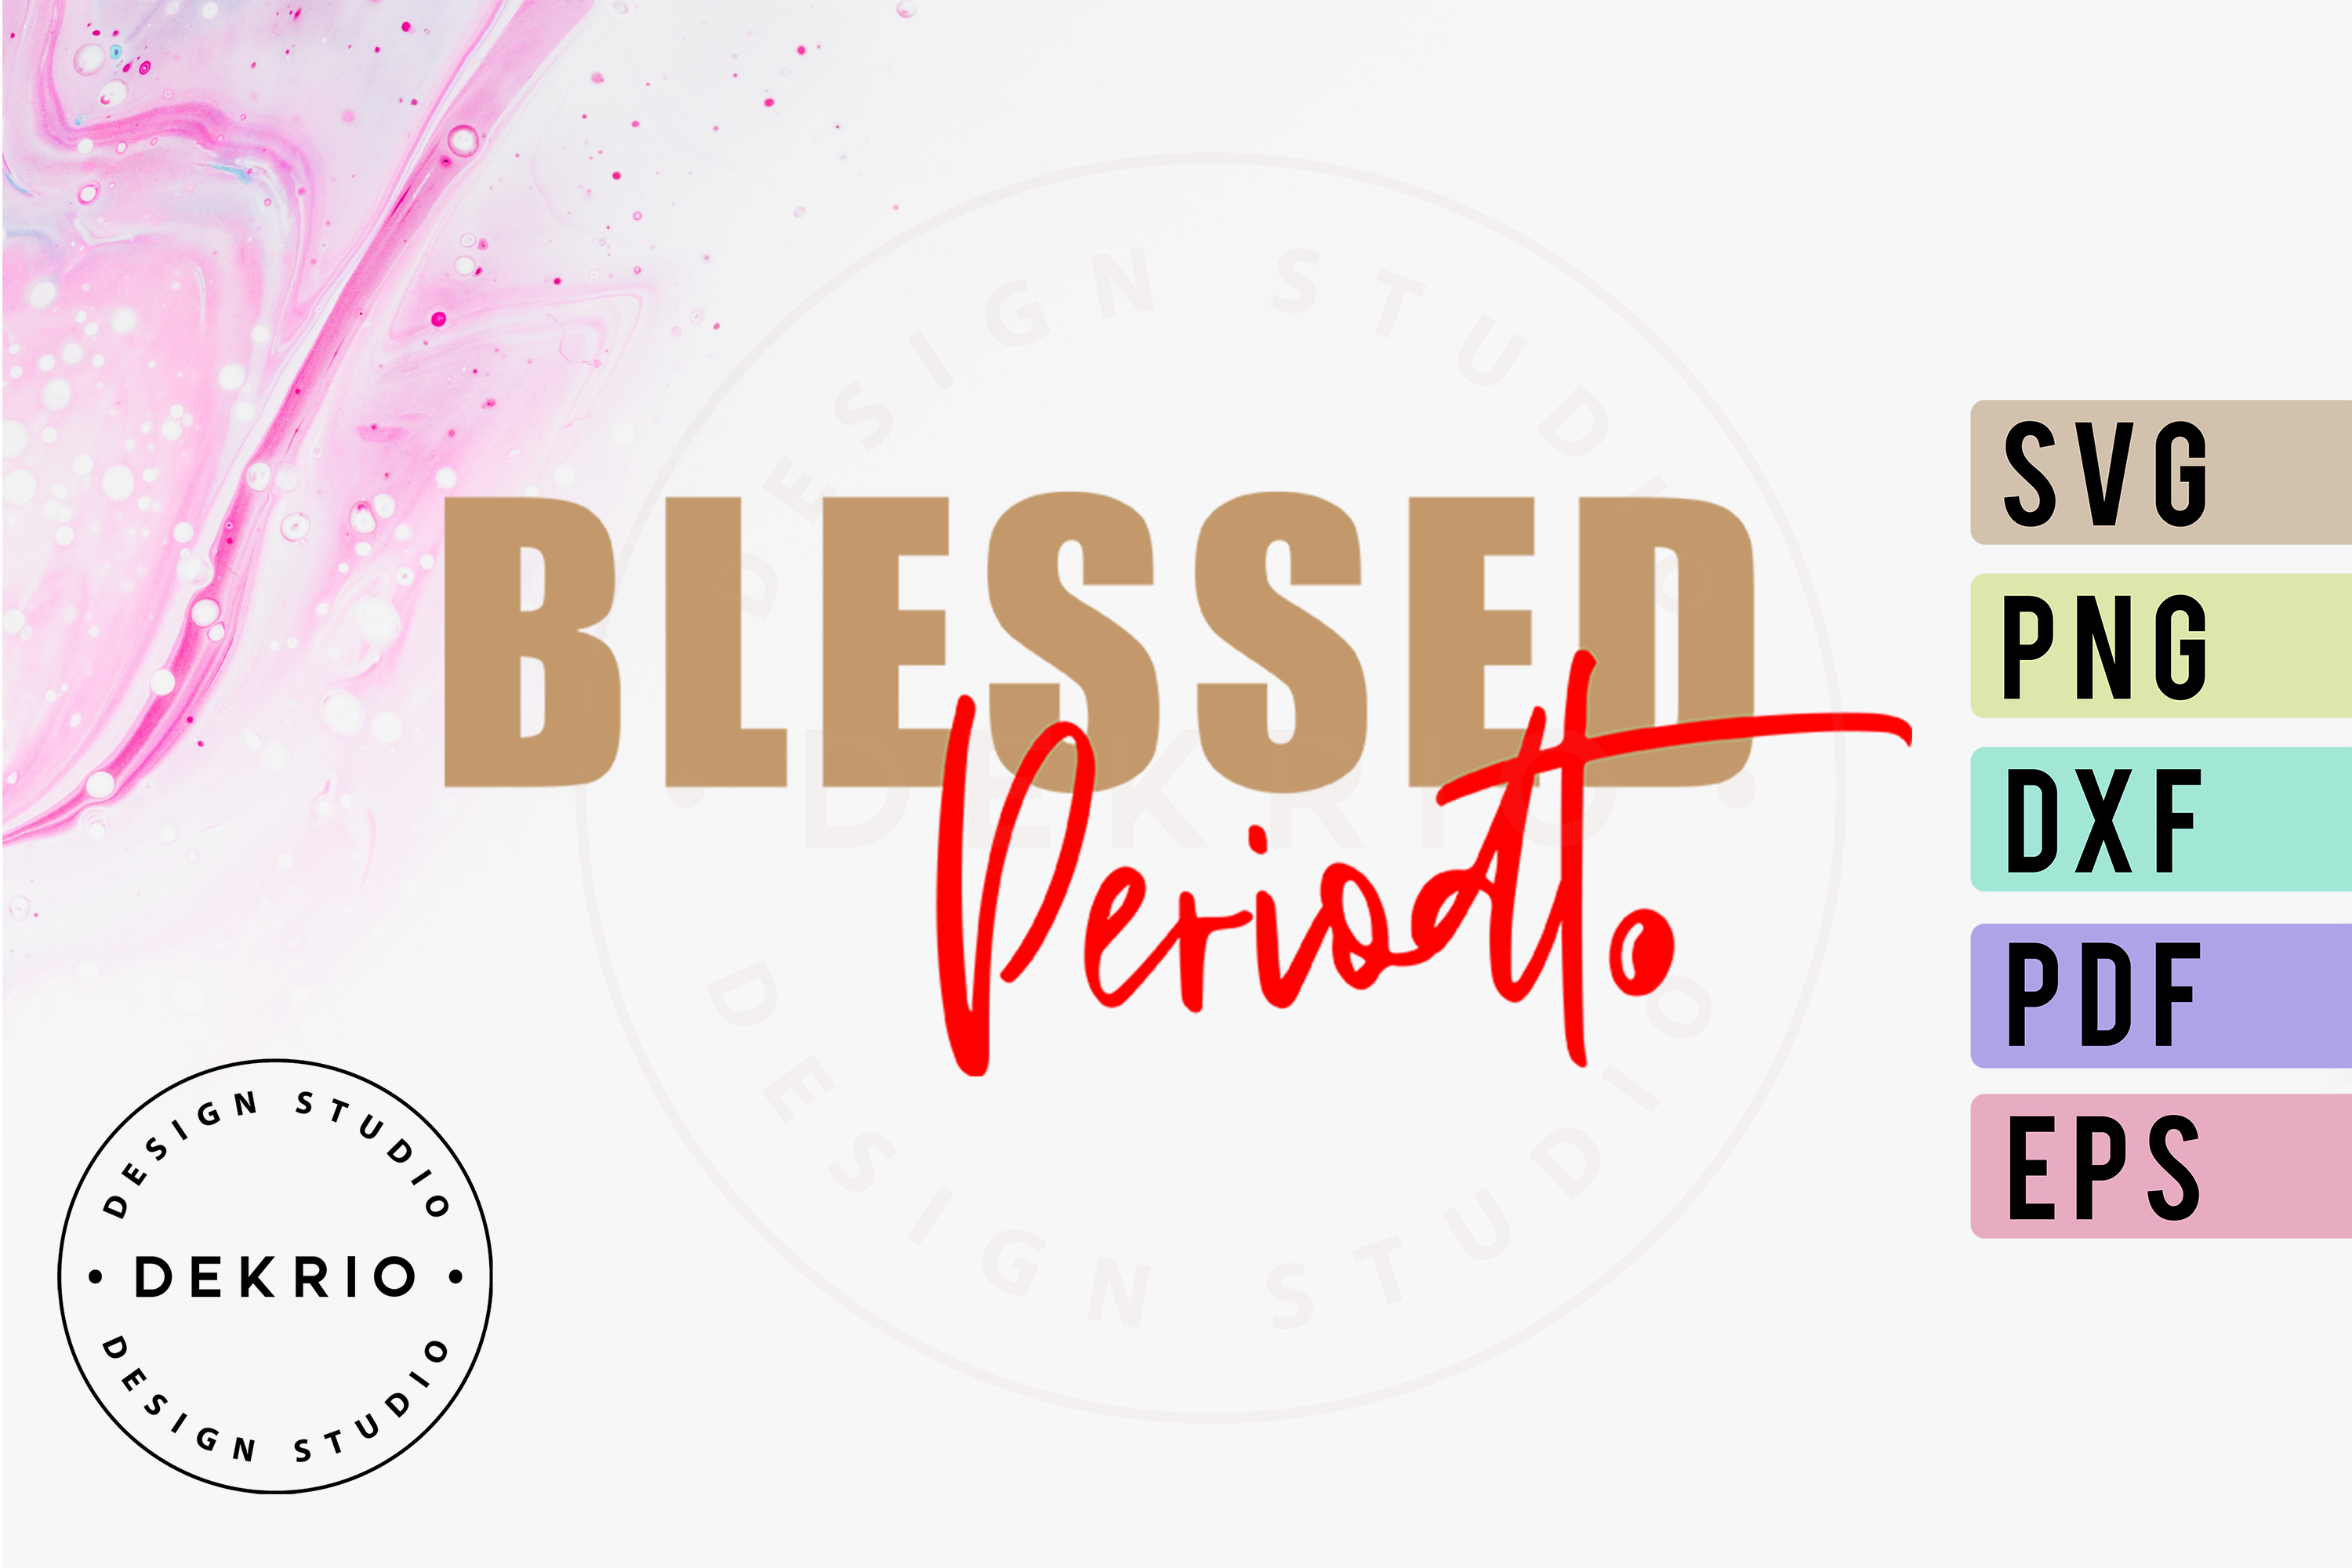 BLESSED Periodt SVG PNG DXF EPS PDF Files example image 1